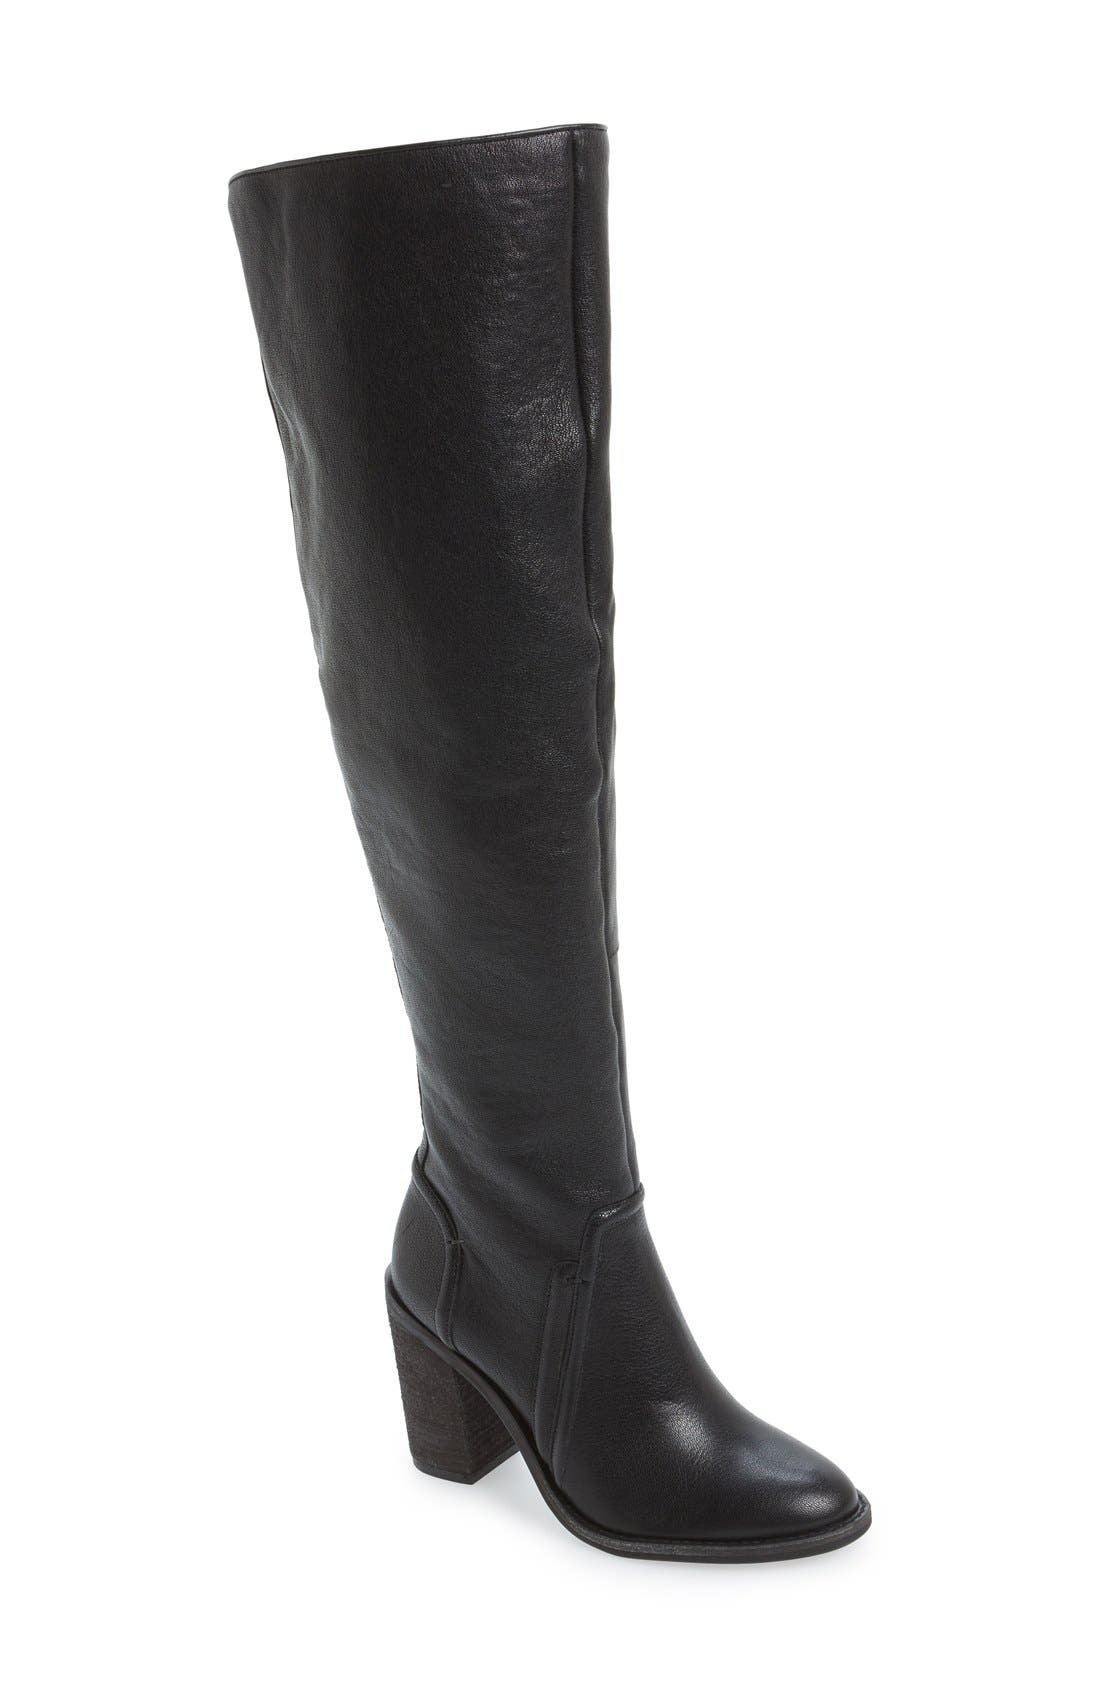 VINCE CAMUTO 'Melaya' Over the Knee Boot, Main, color, 001